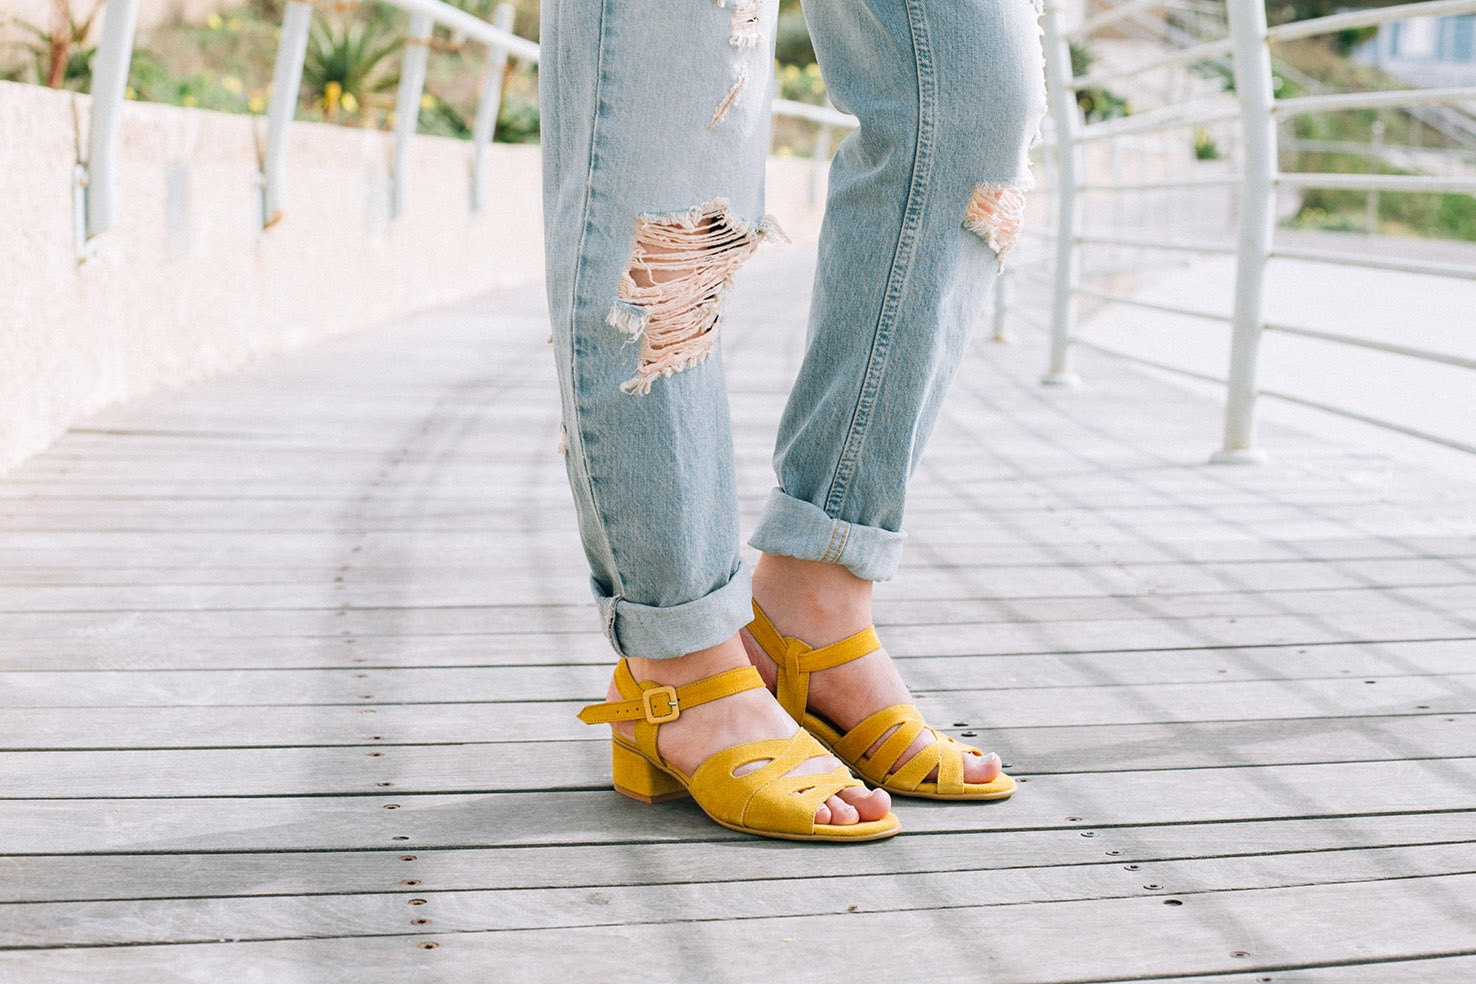 Yellow Sandals For Women, Leather Sandals, Low Heel Sandals, Sandals, Sandals, Women Summer Shoes, Yellow  Gladiator Sandals, Handmade Sandals 7d3ff9